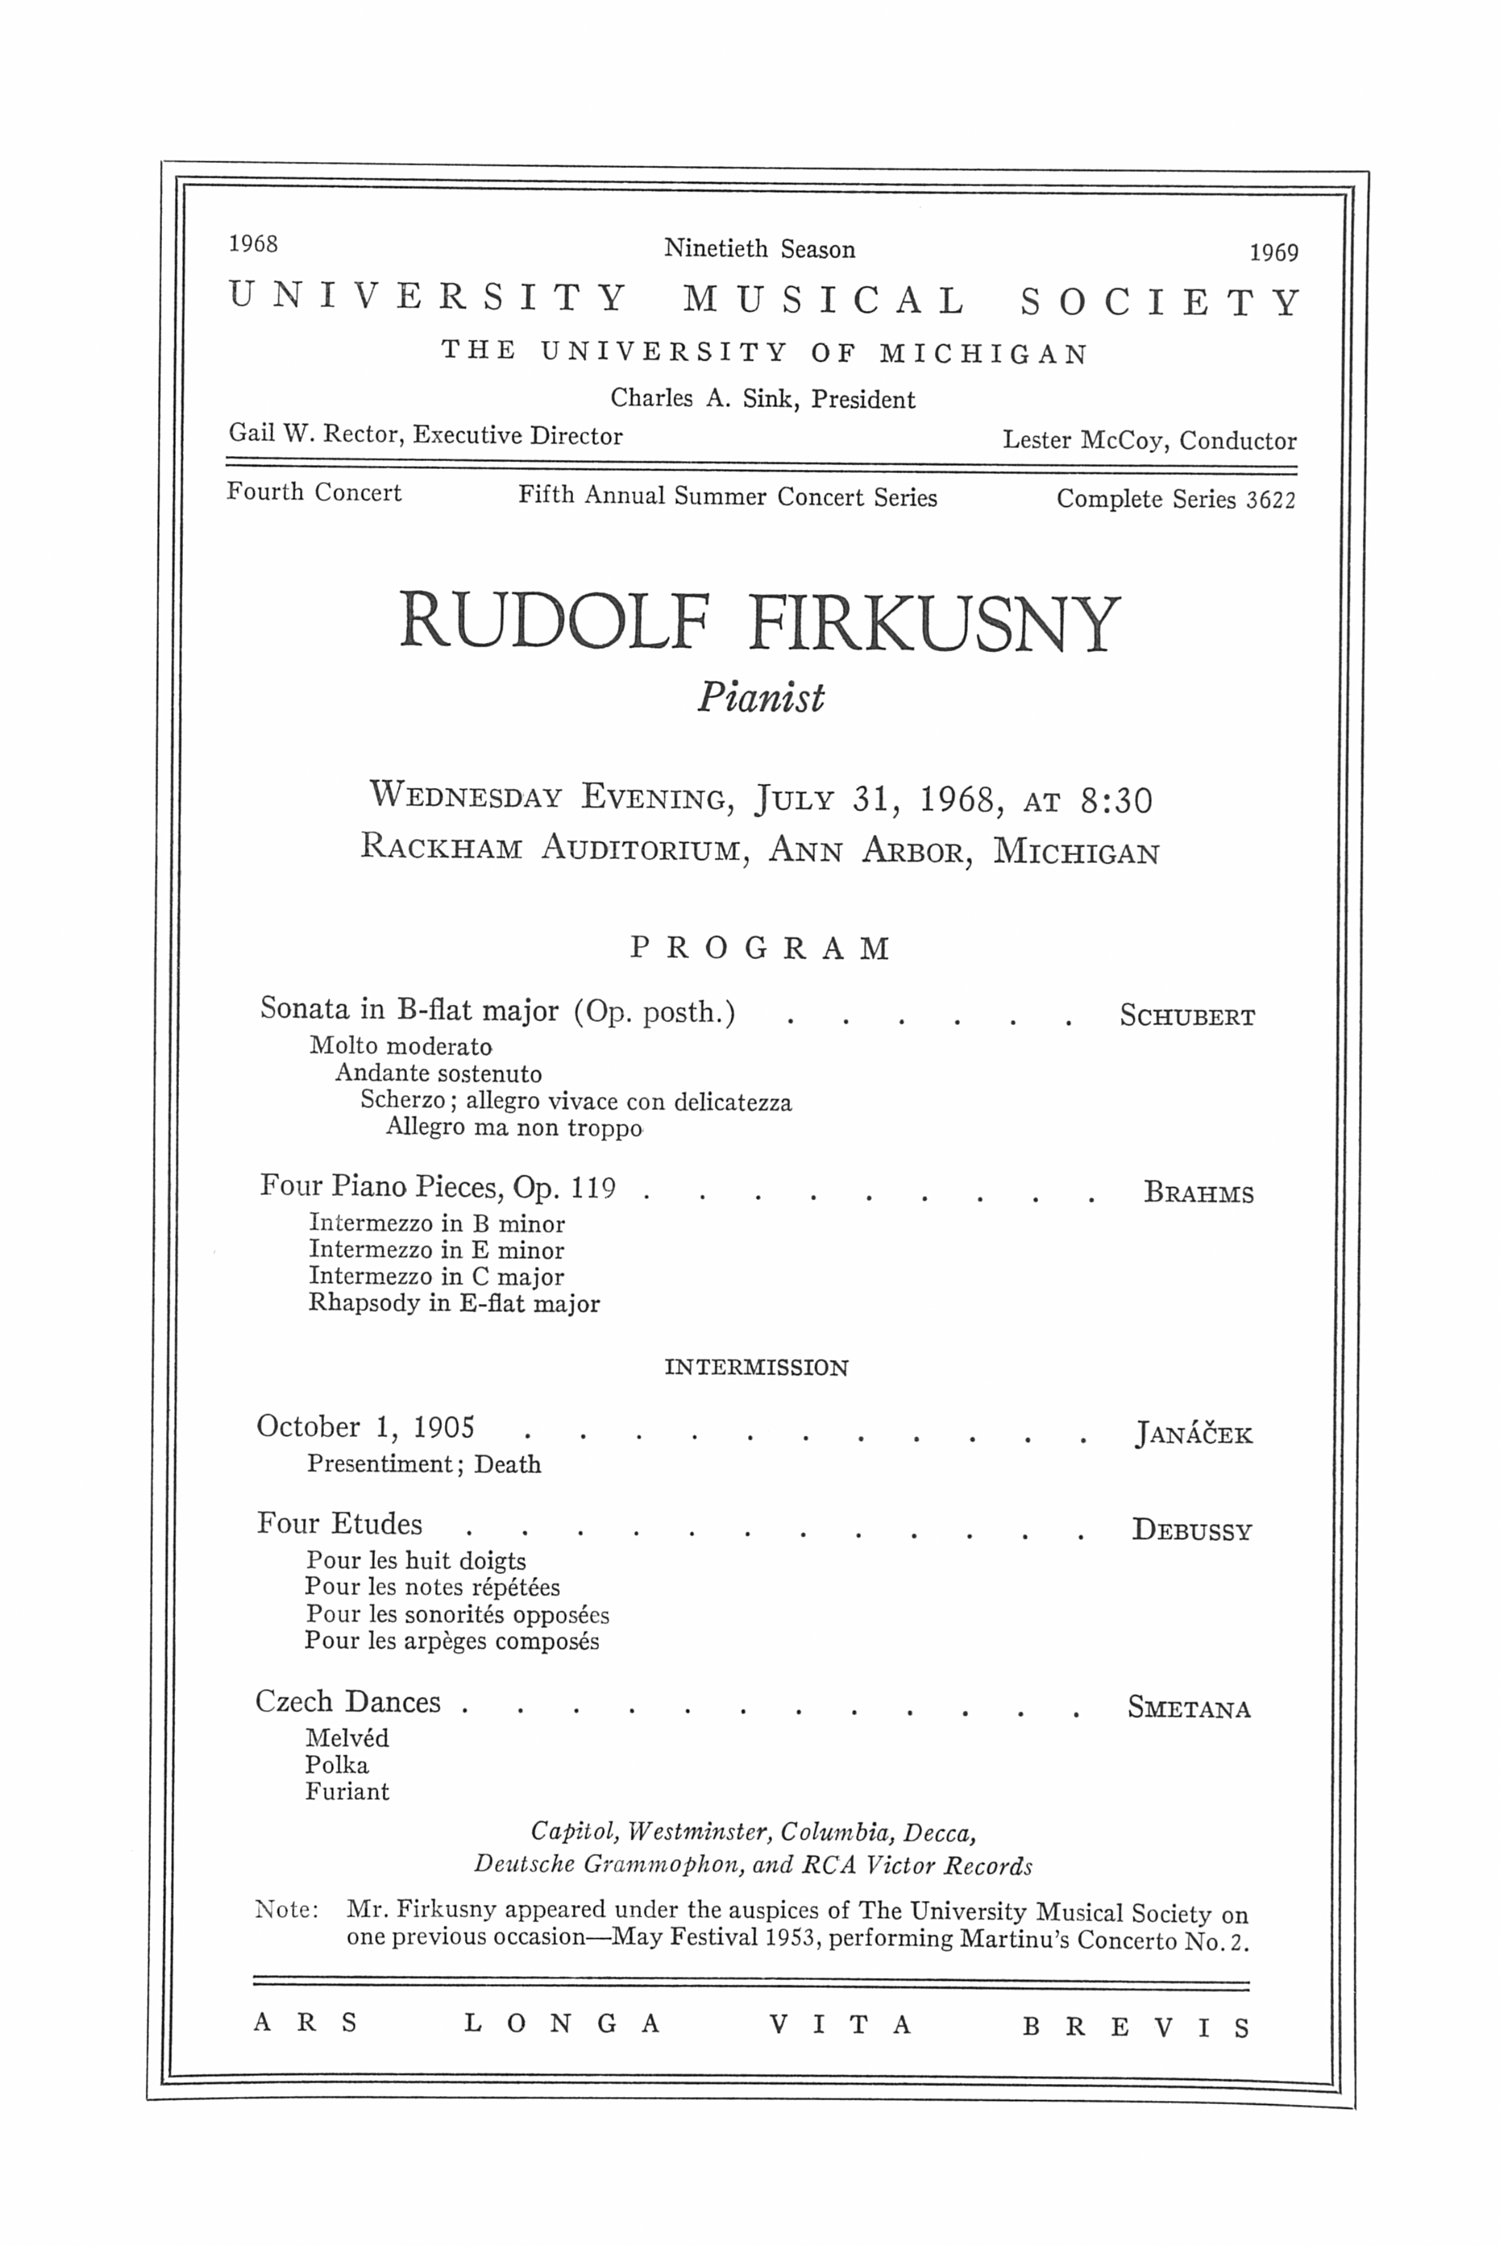 UMS Concert Program, July 31, 1968: Rudolf Firkusny --  image